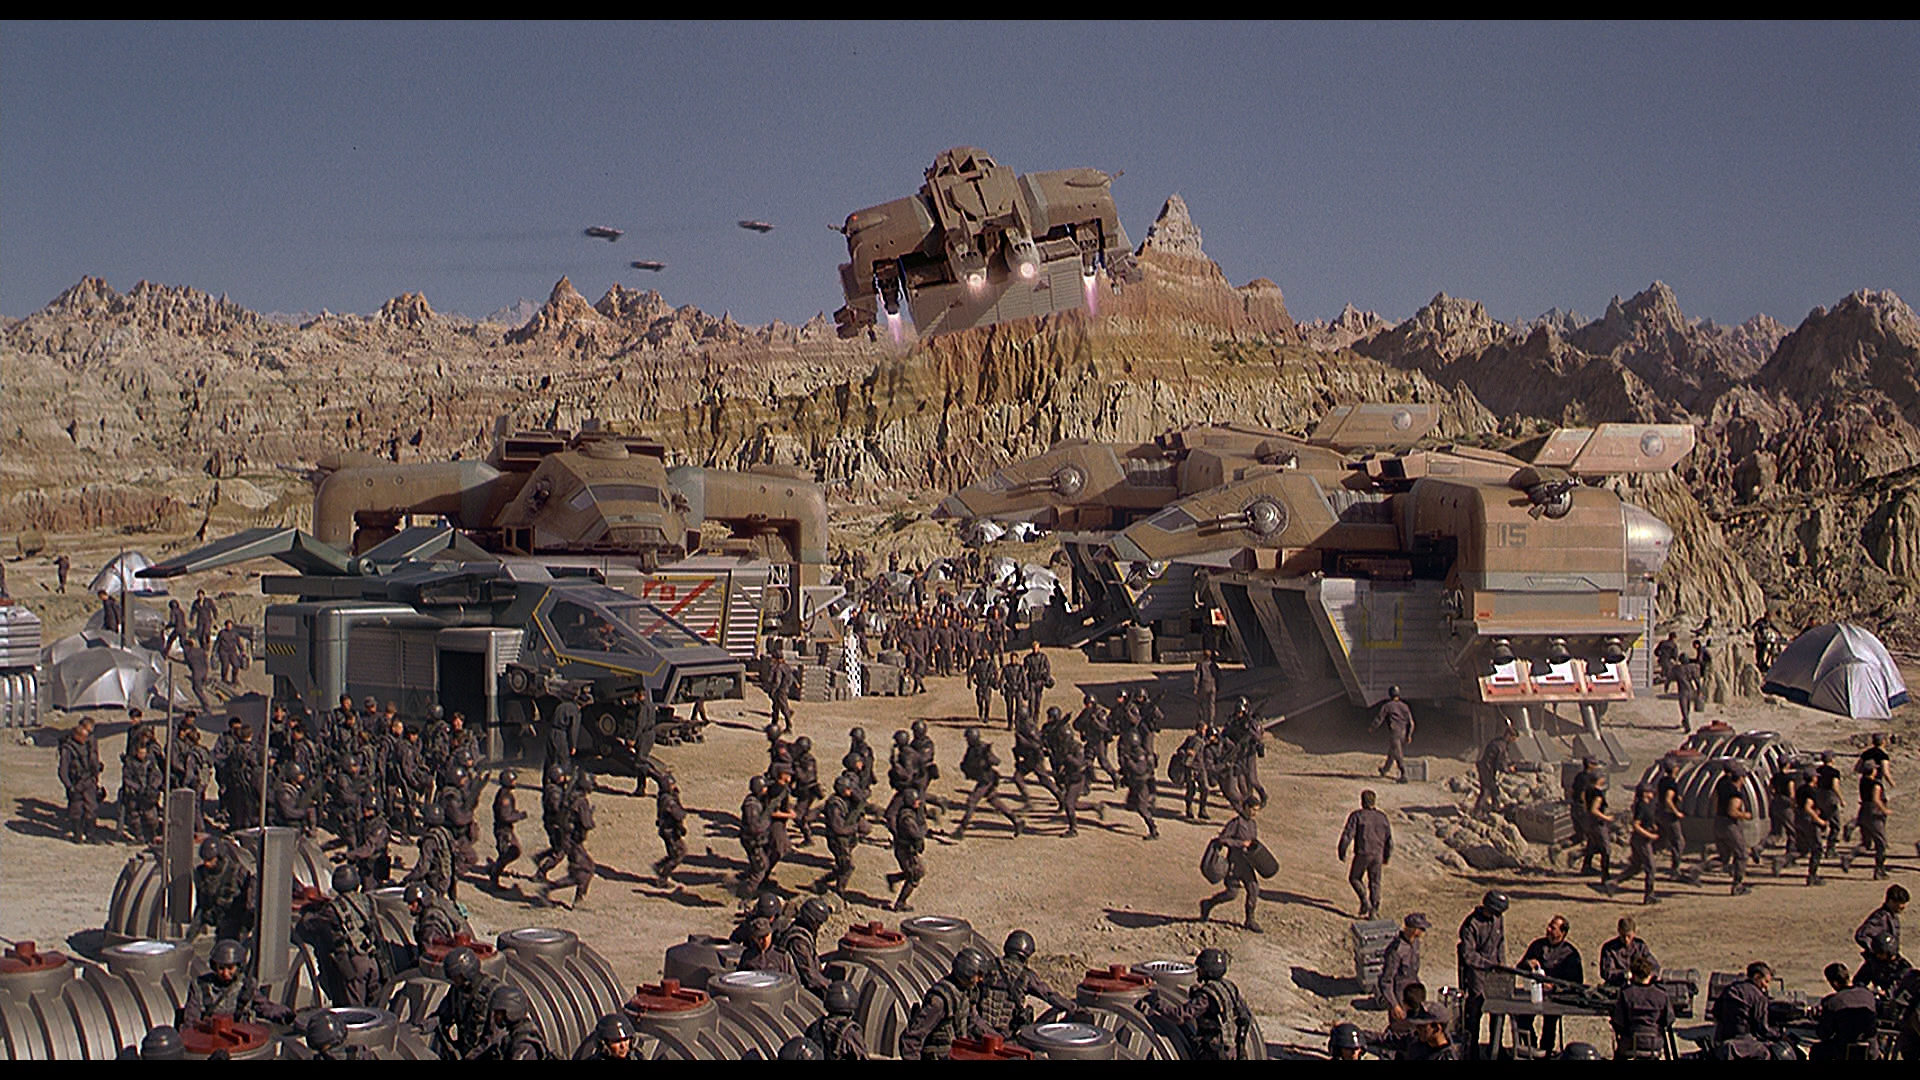 starship-troopers-8 (1920×1080) | hd wallpapers | pinterest | hd